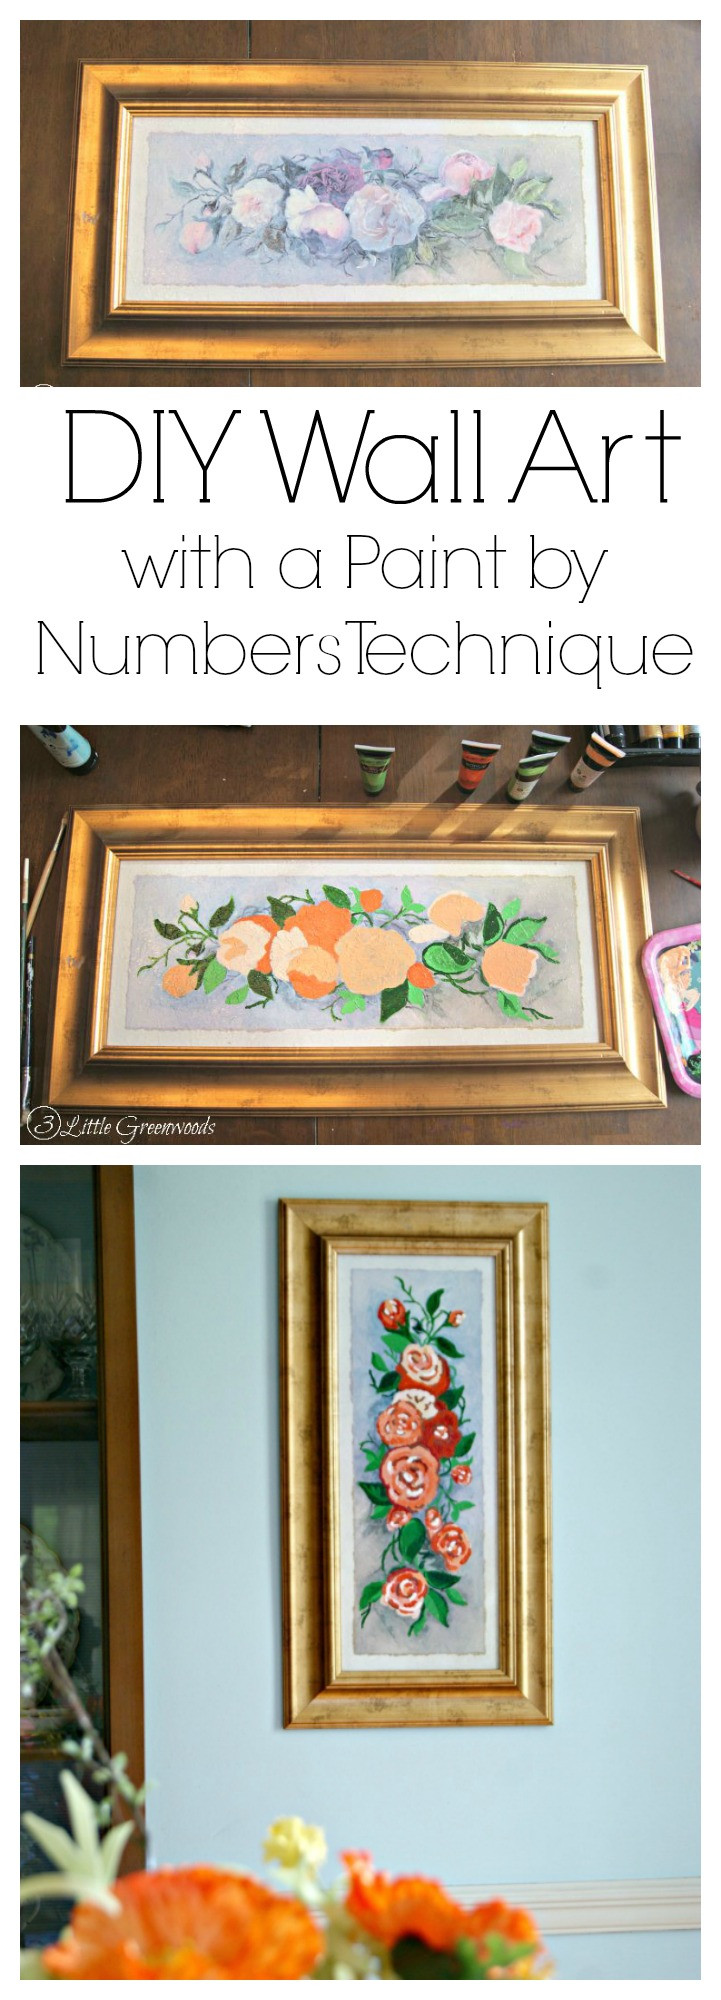 Best ideas about DIY Paint By Numbers . Save or Pin DIY Wall Art with a DIY Paint by Numbers Technique Now.